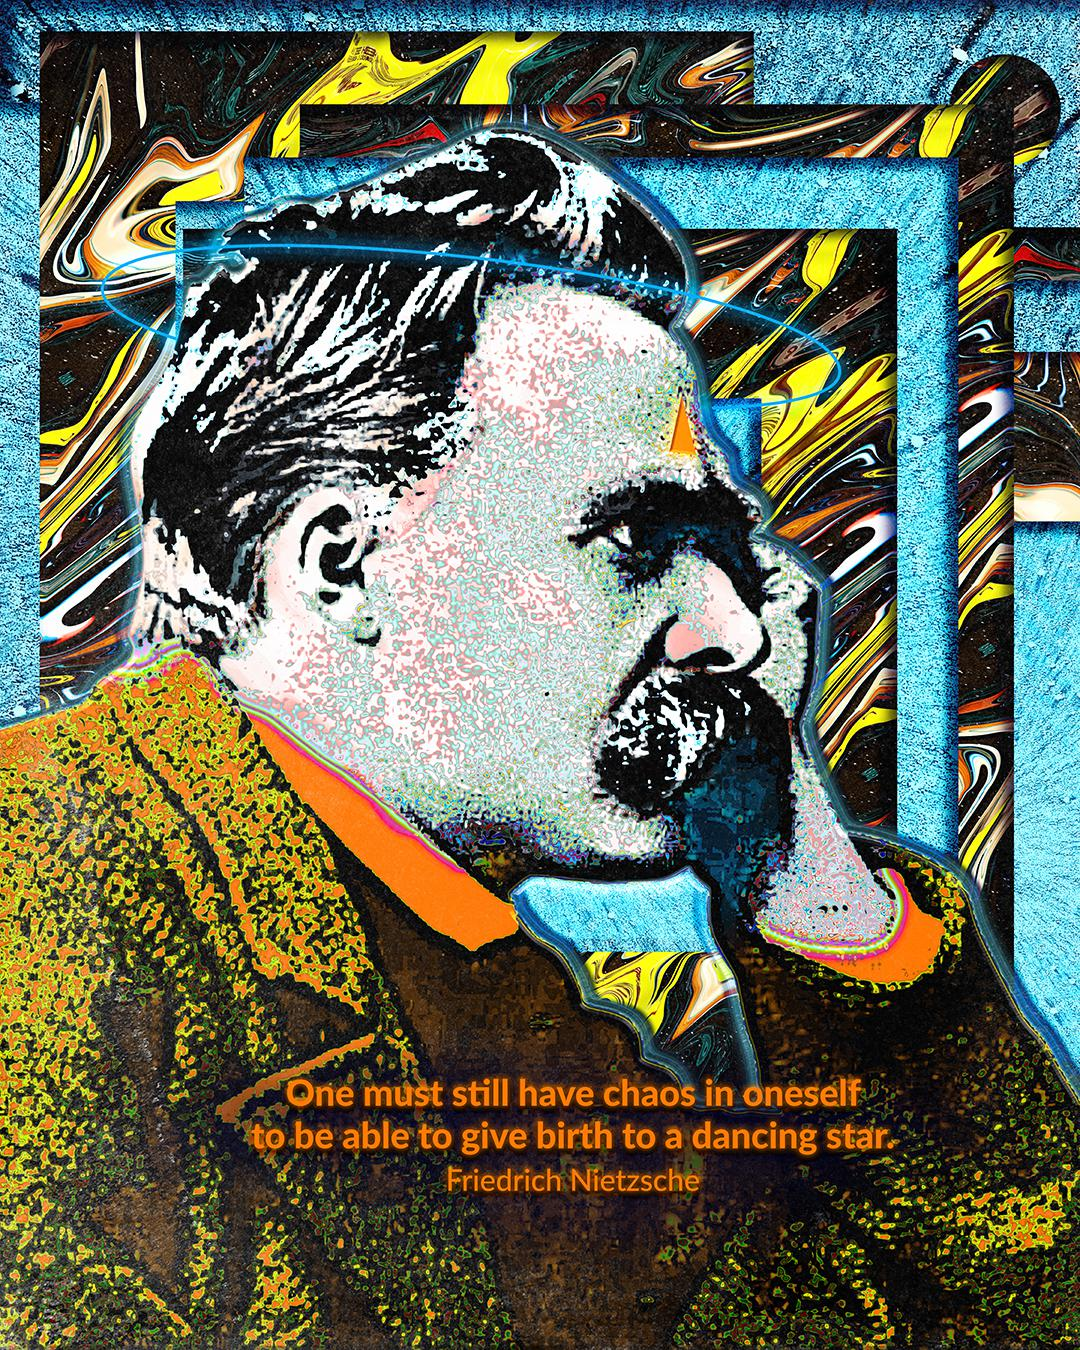 """One must still have chaos in oneself to be able to give birth to a dancing star."" – Friedrich Nietzsche [1080 x 1350]"